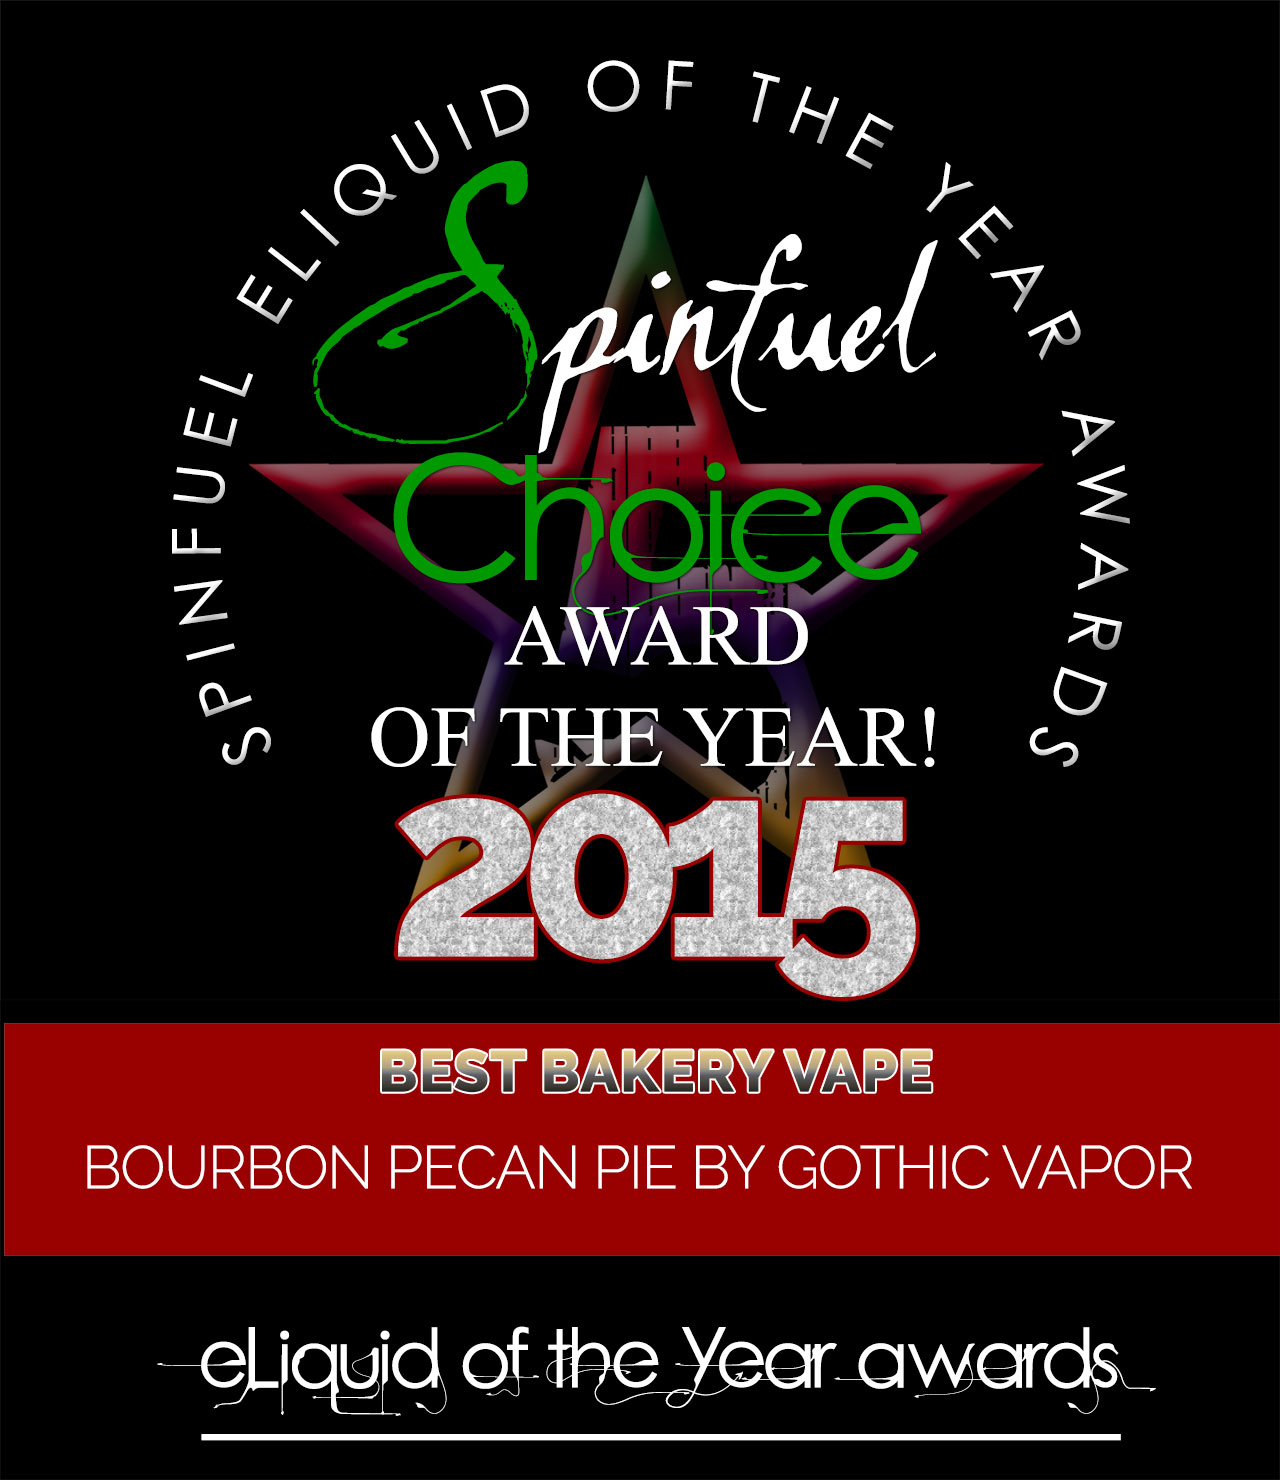 Gothic Vapor - Spinfuel Choice Award 2015